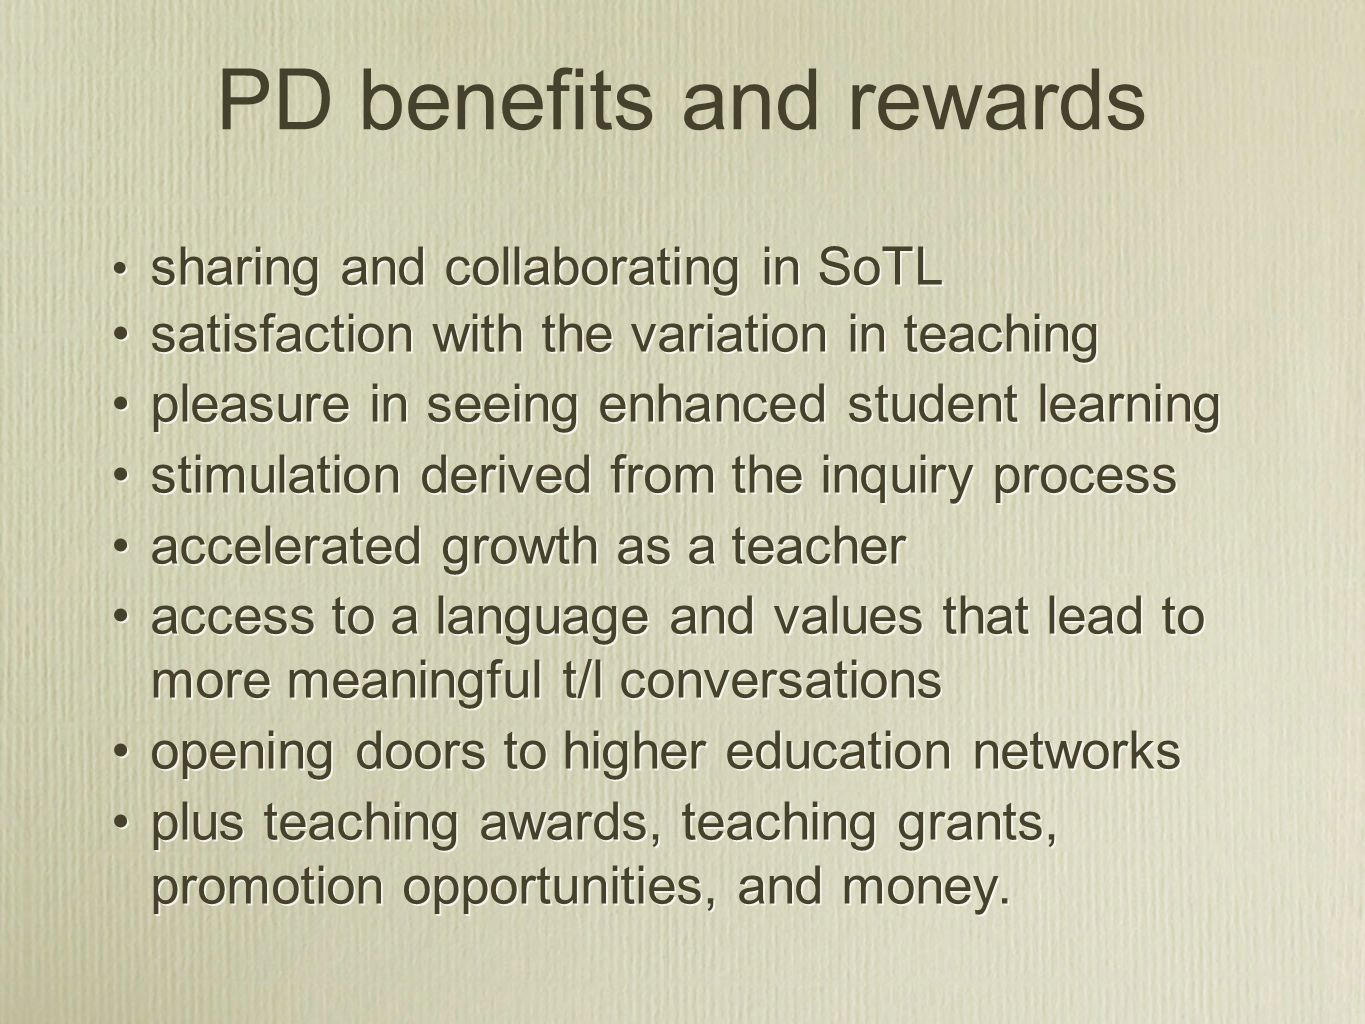 PD benefits and rewards